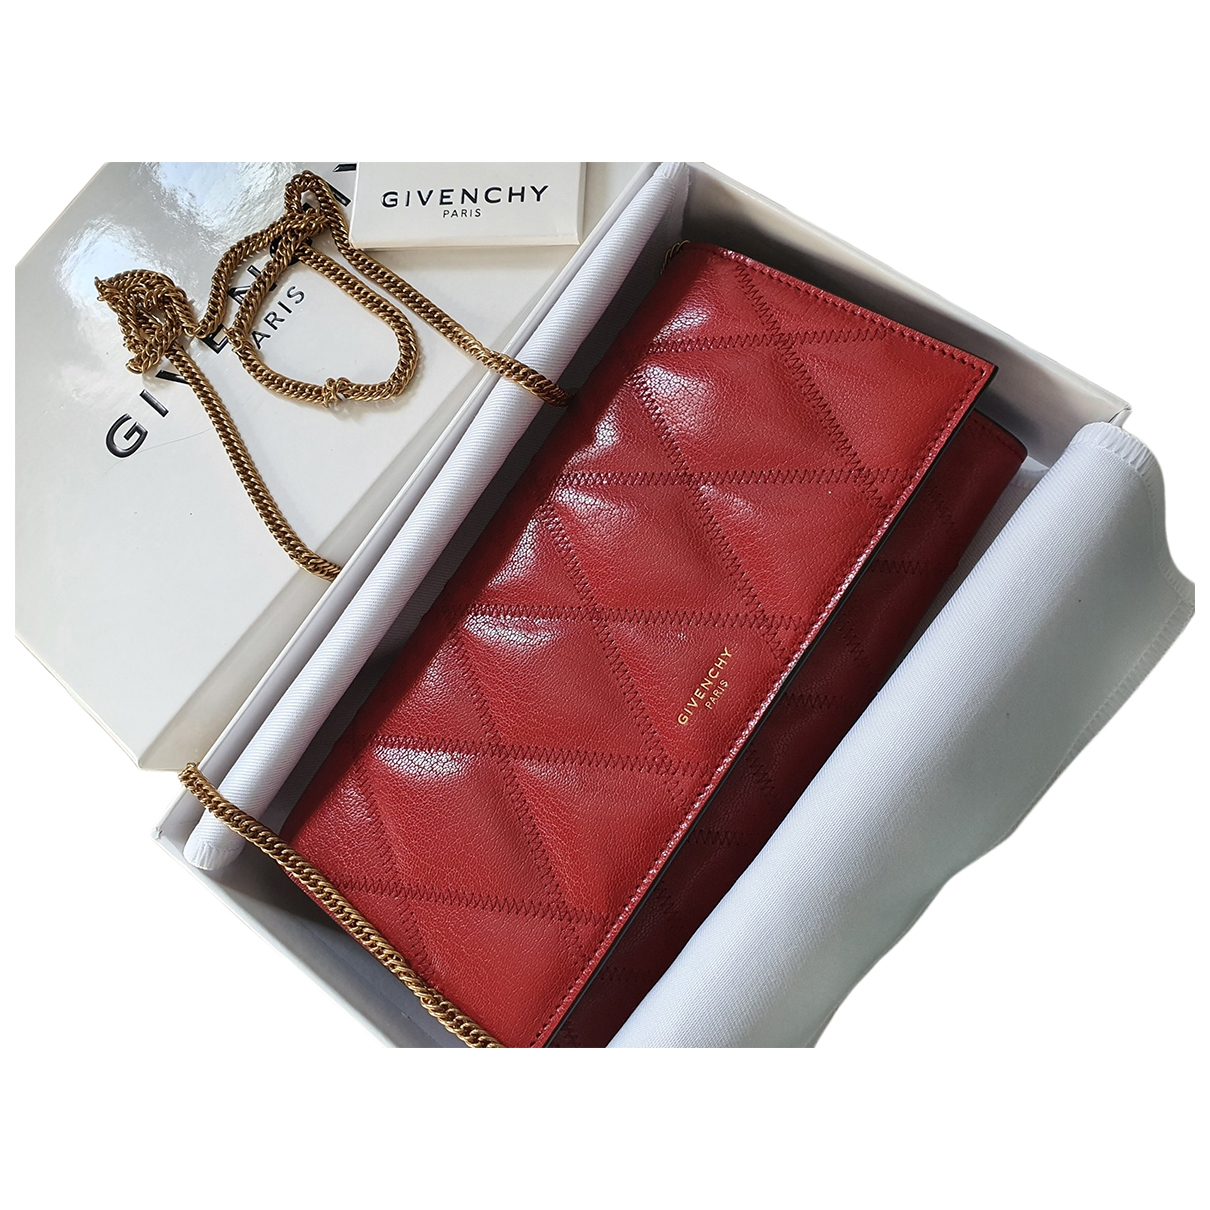 Givenchy \N Red Leather wallet for Women \N